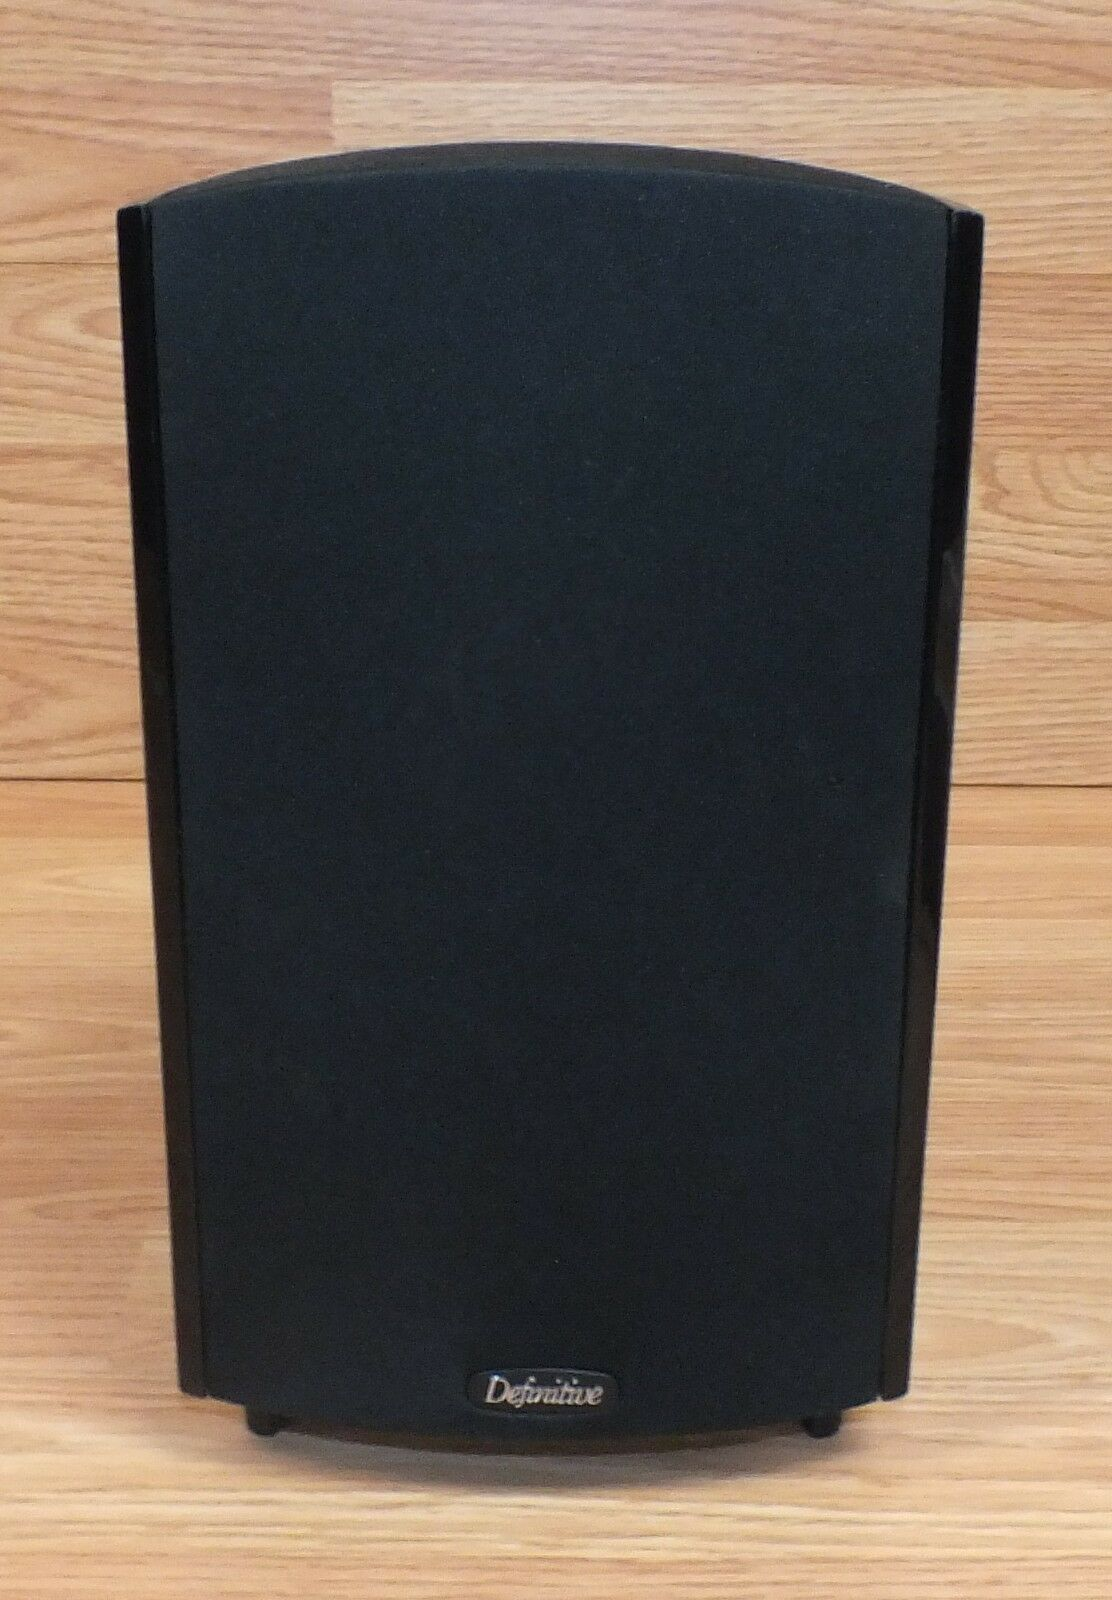 (1) Definitive Technology Pro Monitor (1000) Replacement Speaker ONLY READ